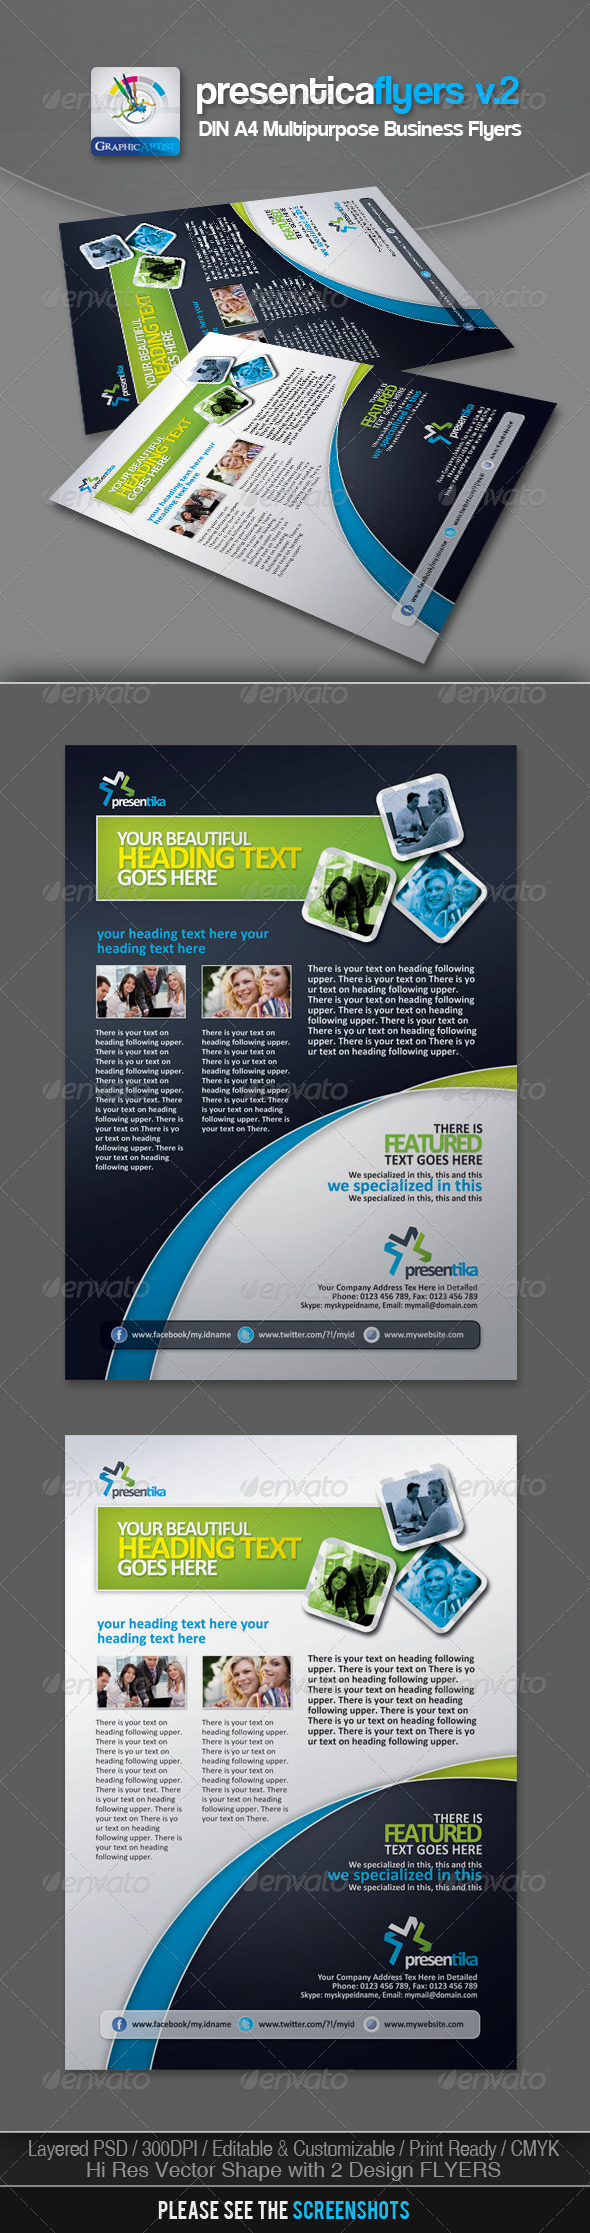 Presentica Corporate Business Flyers v.2 - Corporate Flyers